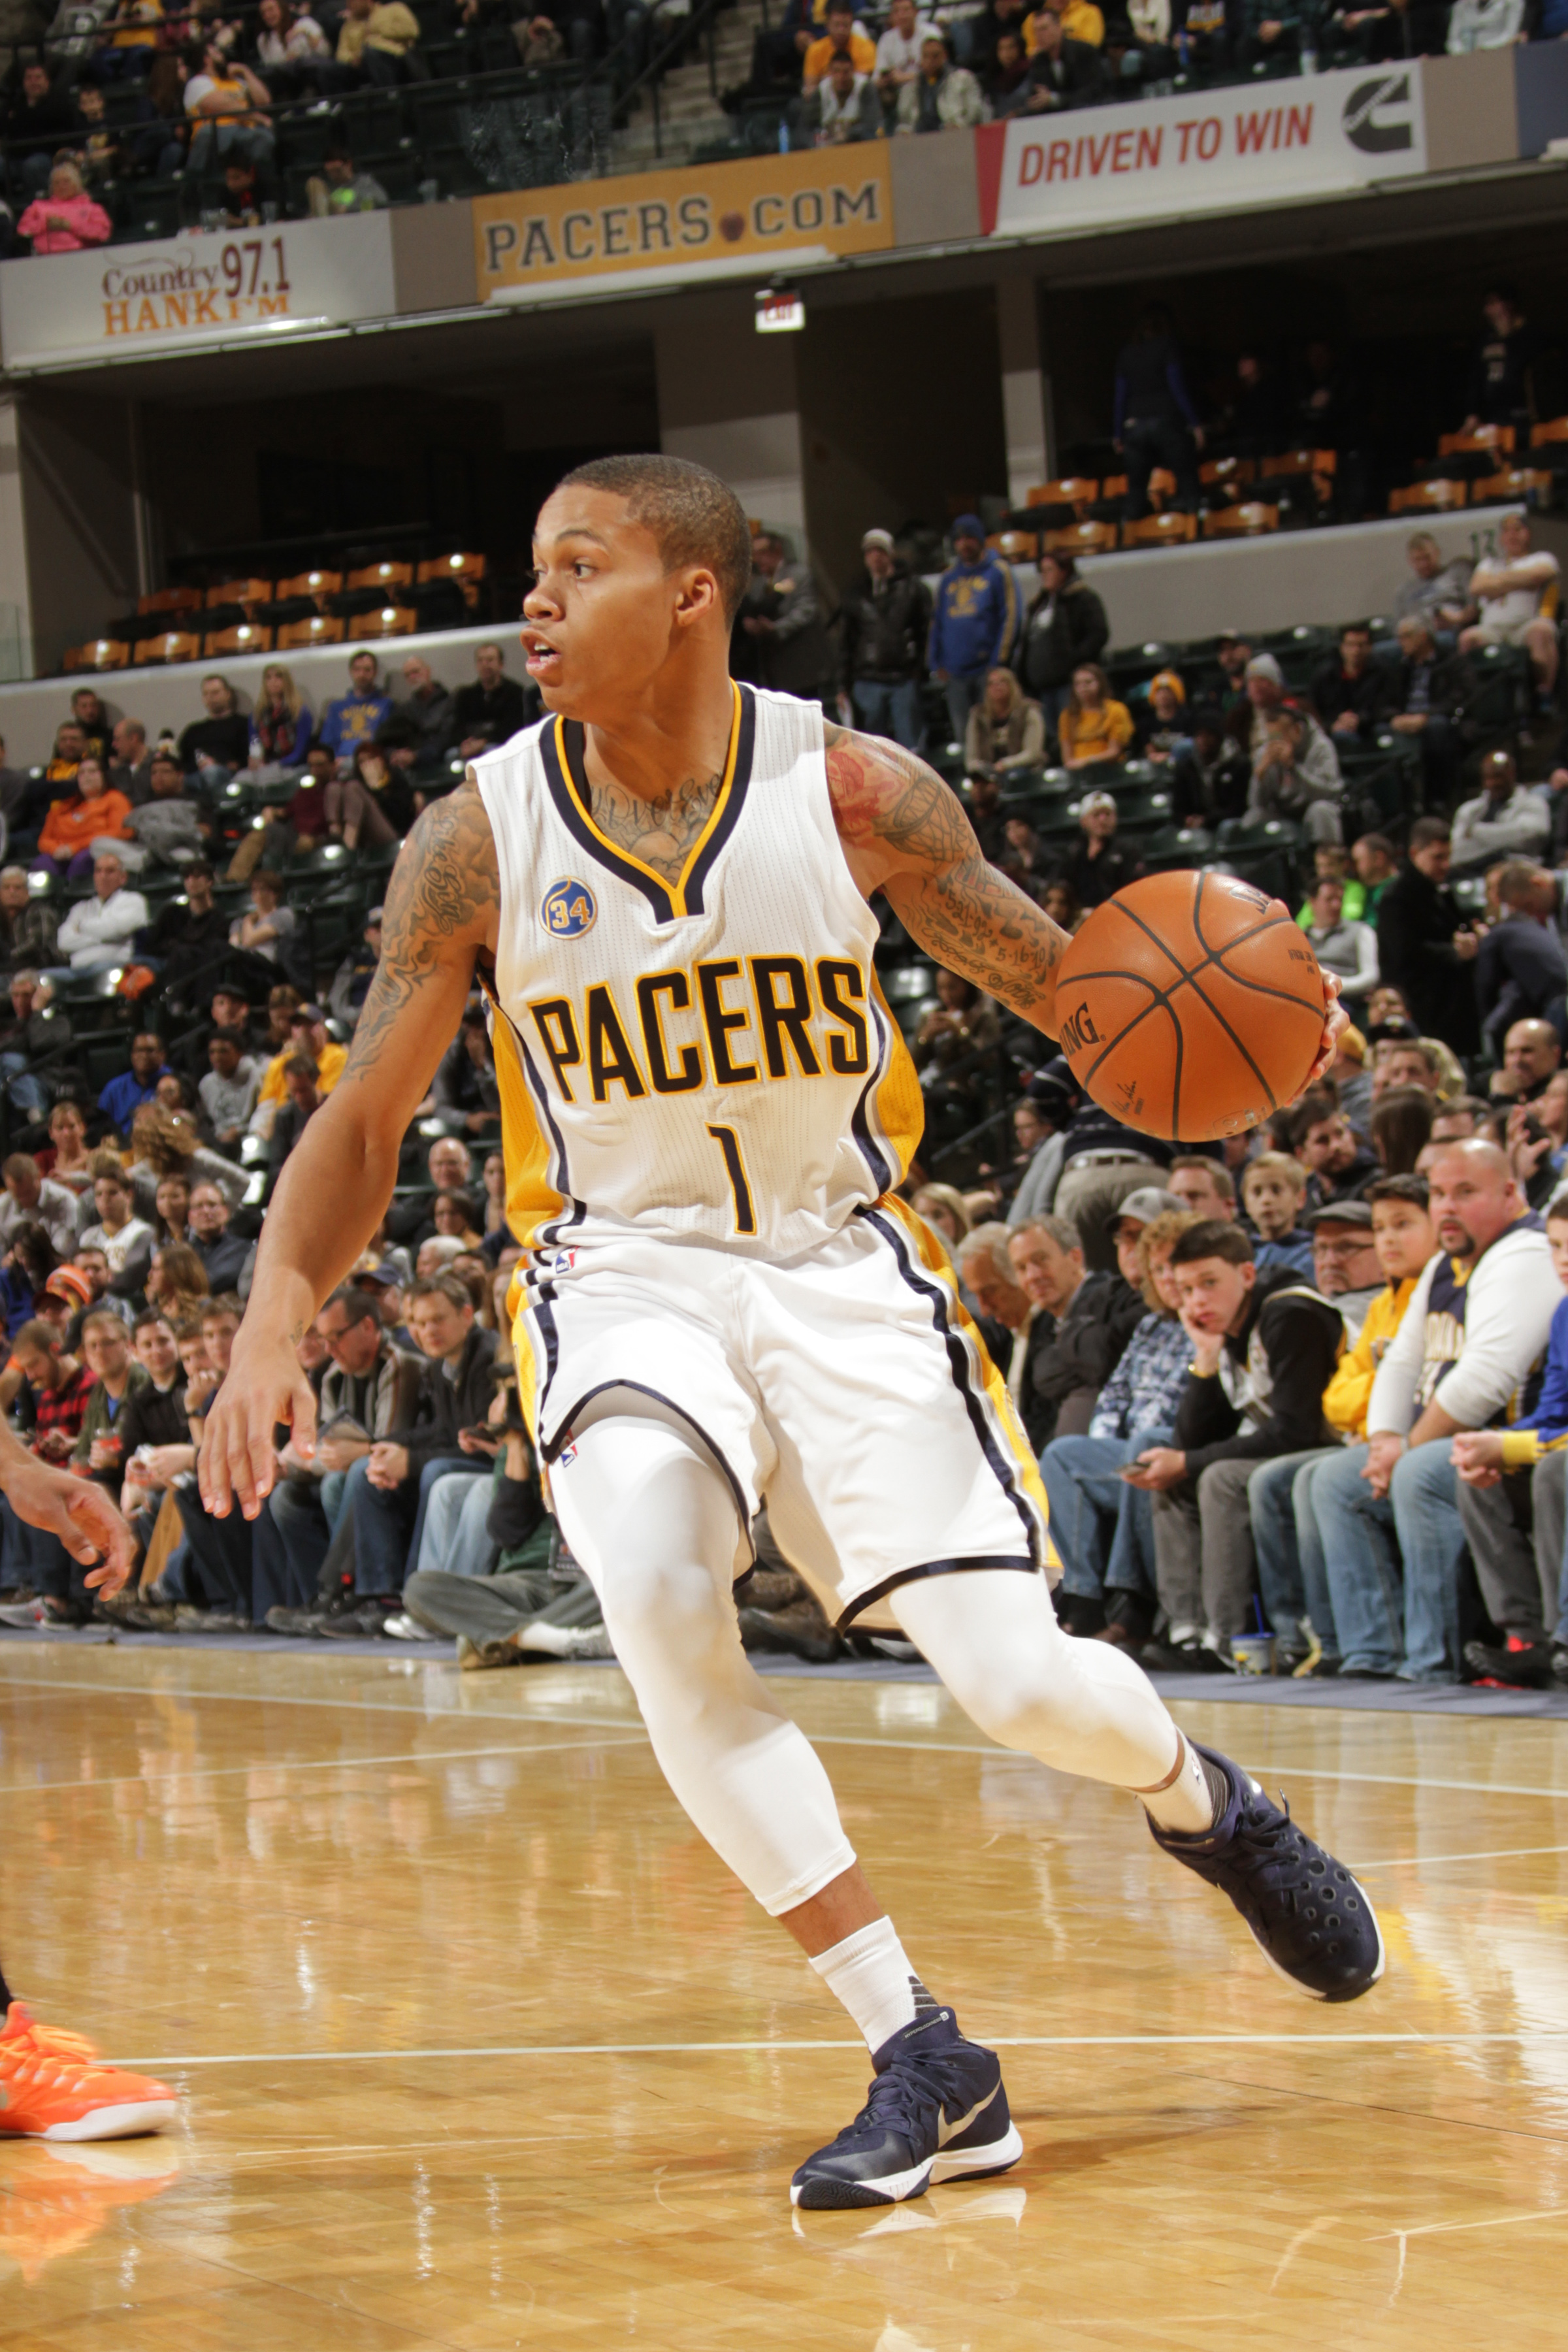 INDIANAPOLIS, IN - JANUARY 12: Joe Young #1 of the Indiana Pacers handles the ball against the Phoenix Suns on January 12, 2016 at Bankers Life Fieldhouse in Indianapolis, Indiana. (Photo by Ron Hoskins/NBAE via Getty Images)